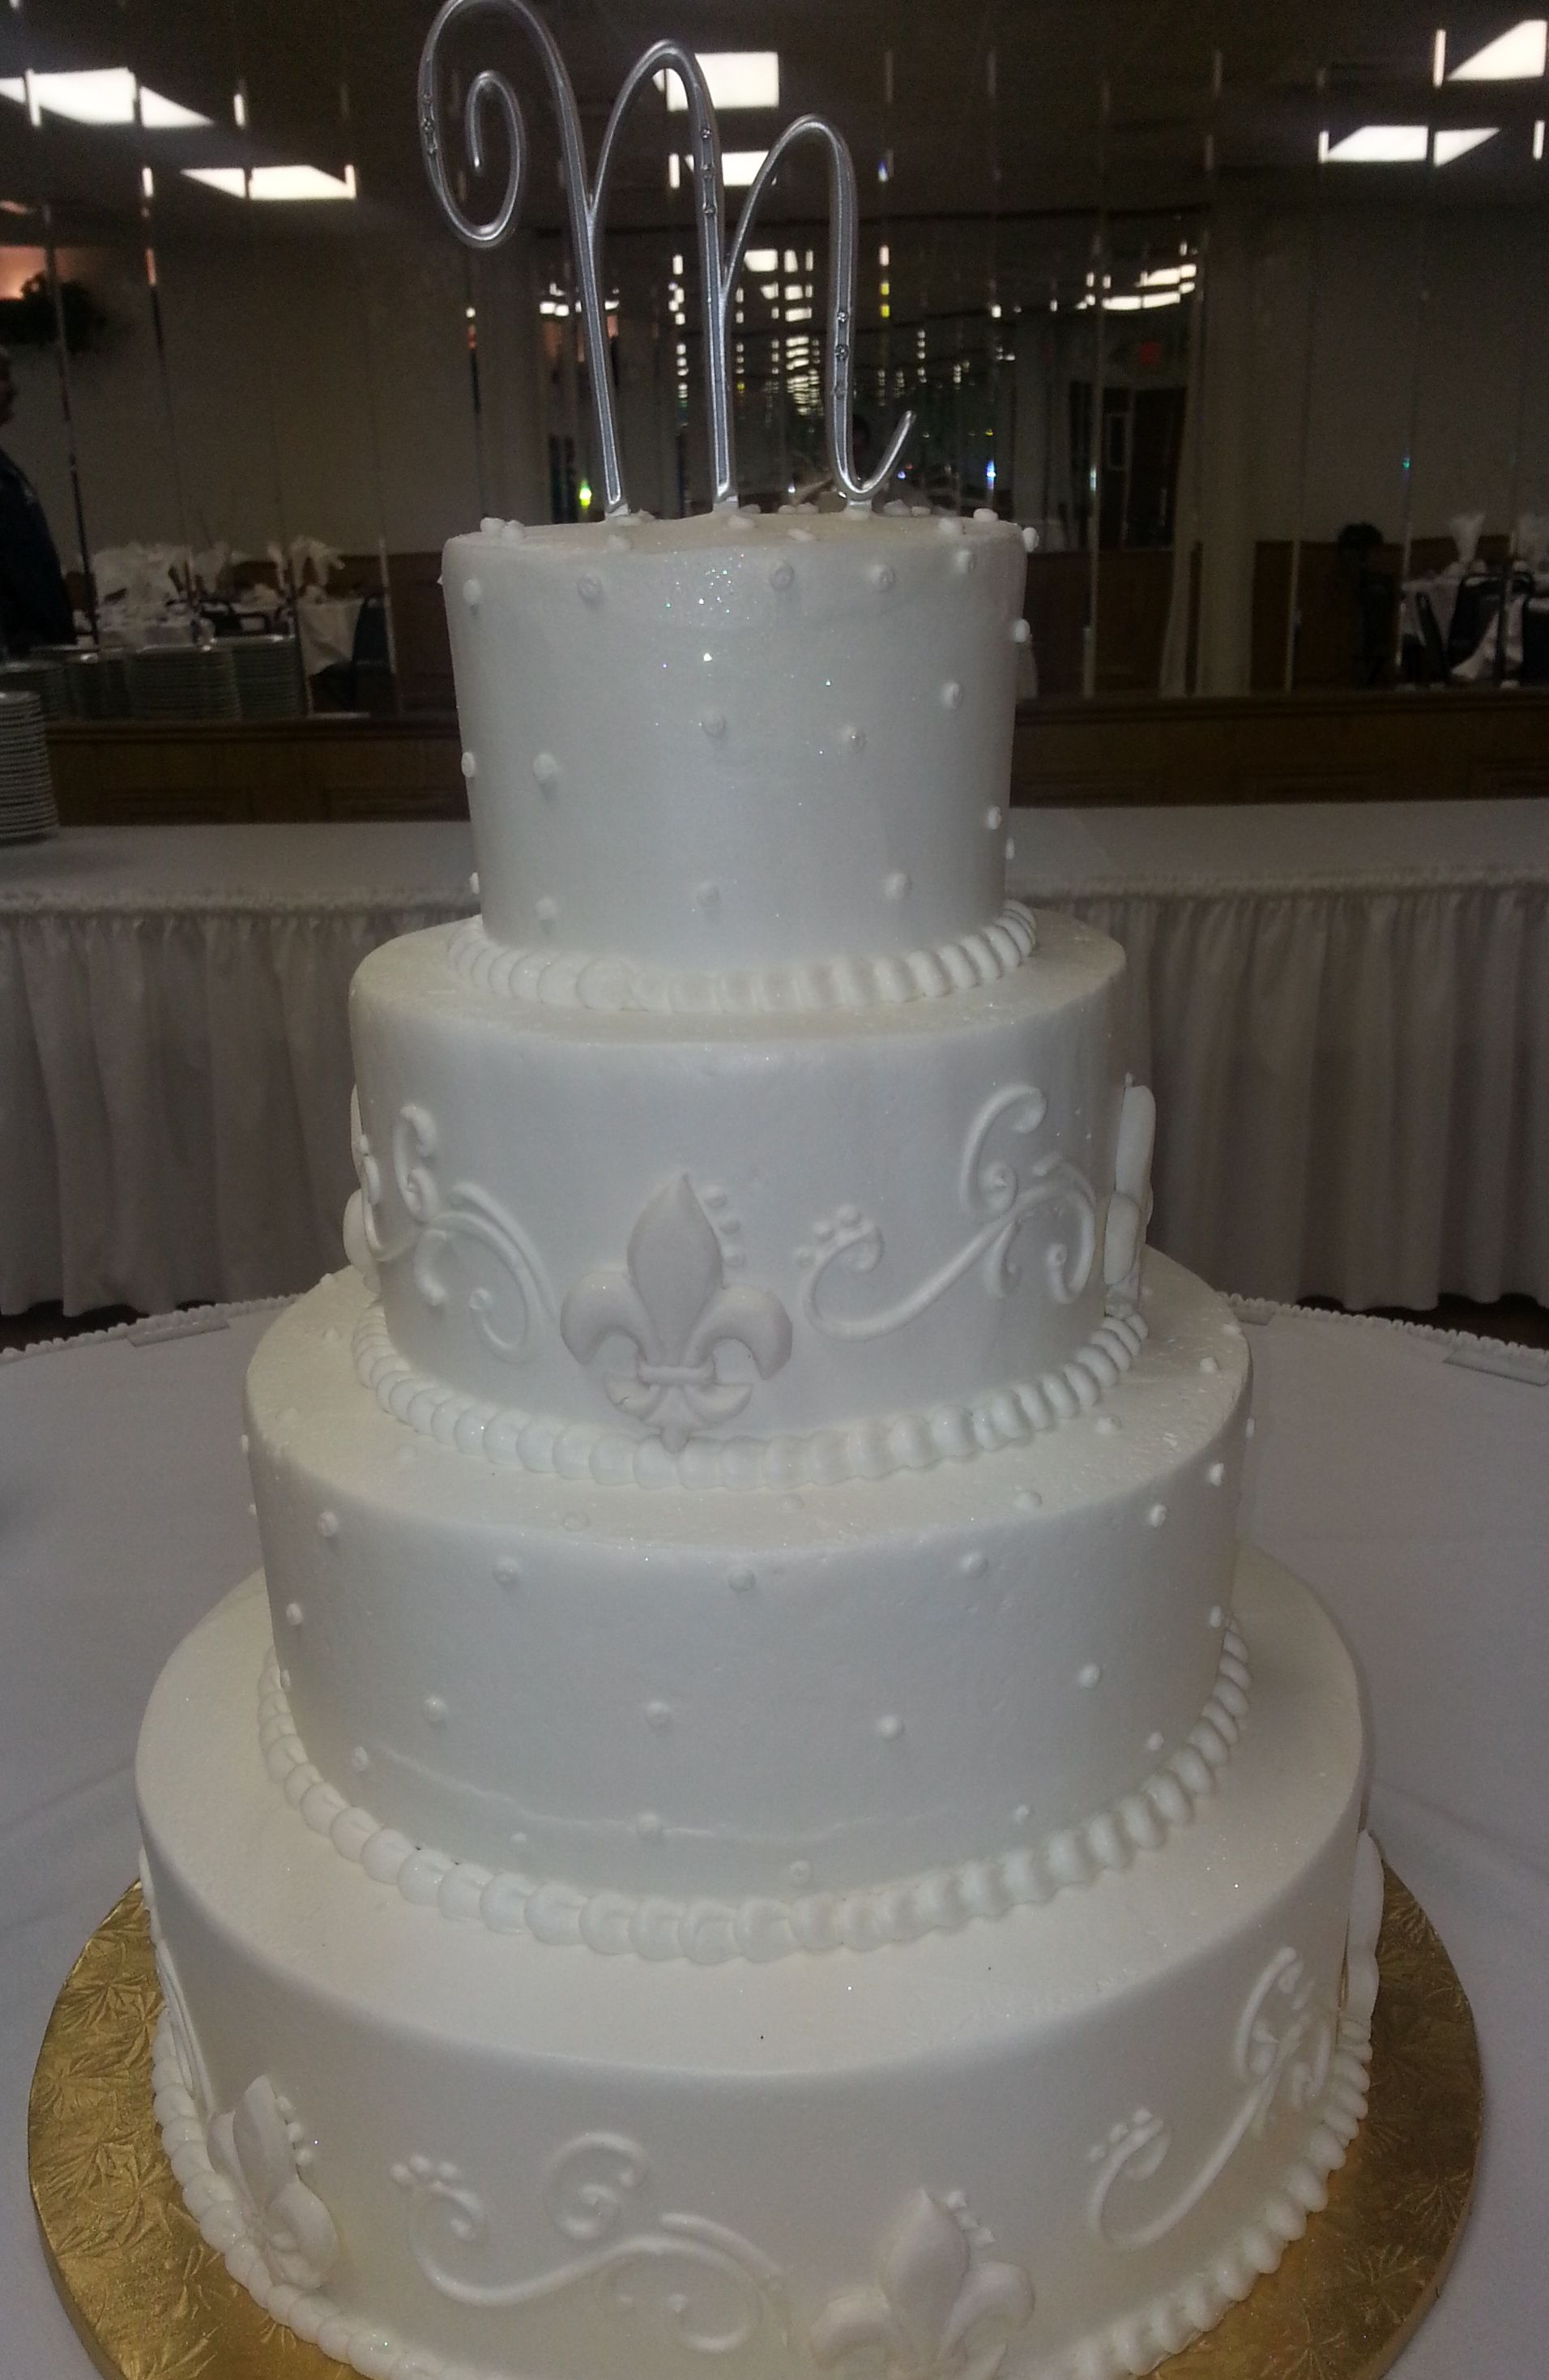 Calumet Bakery Wedding Cake With Fleur De Lis Details